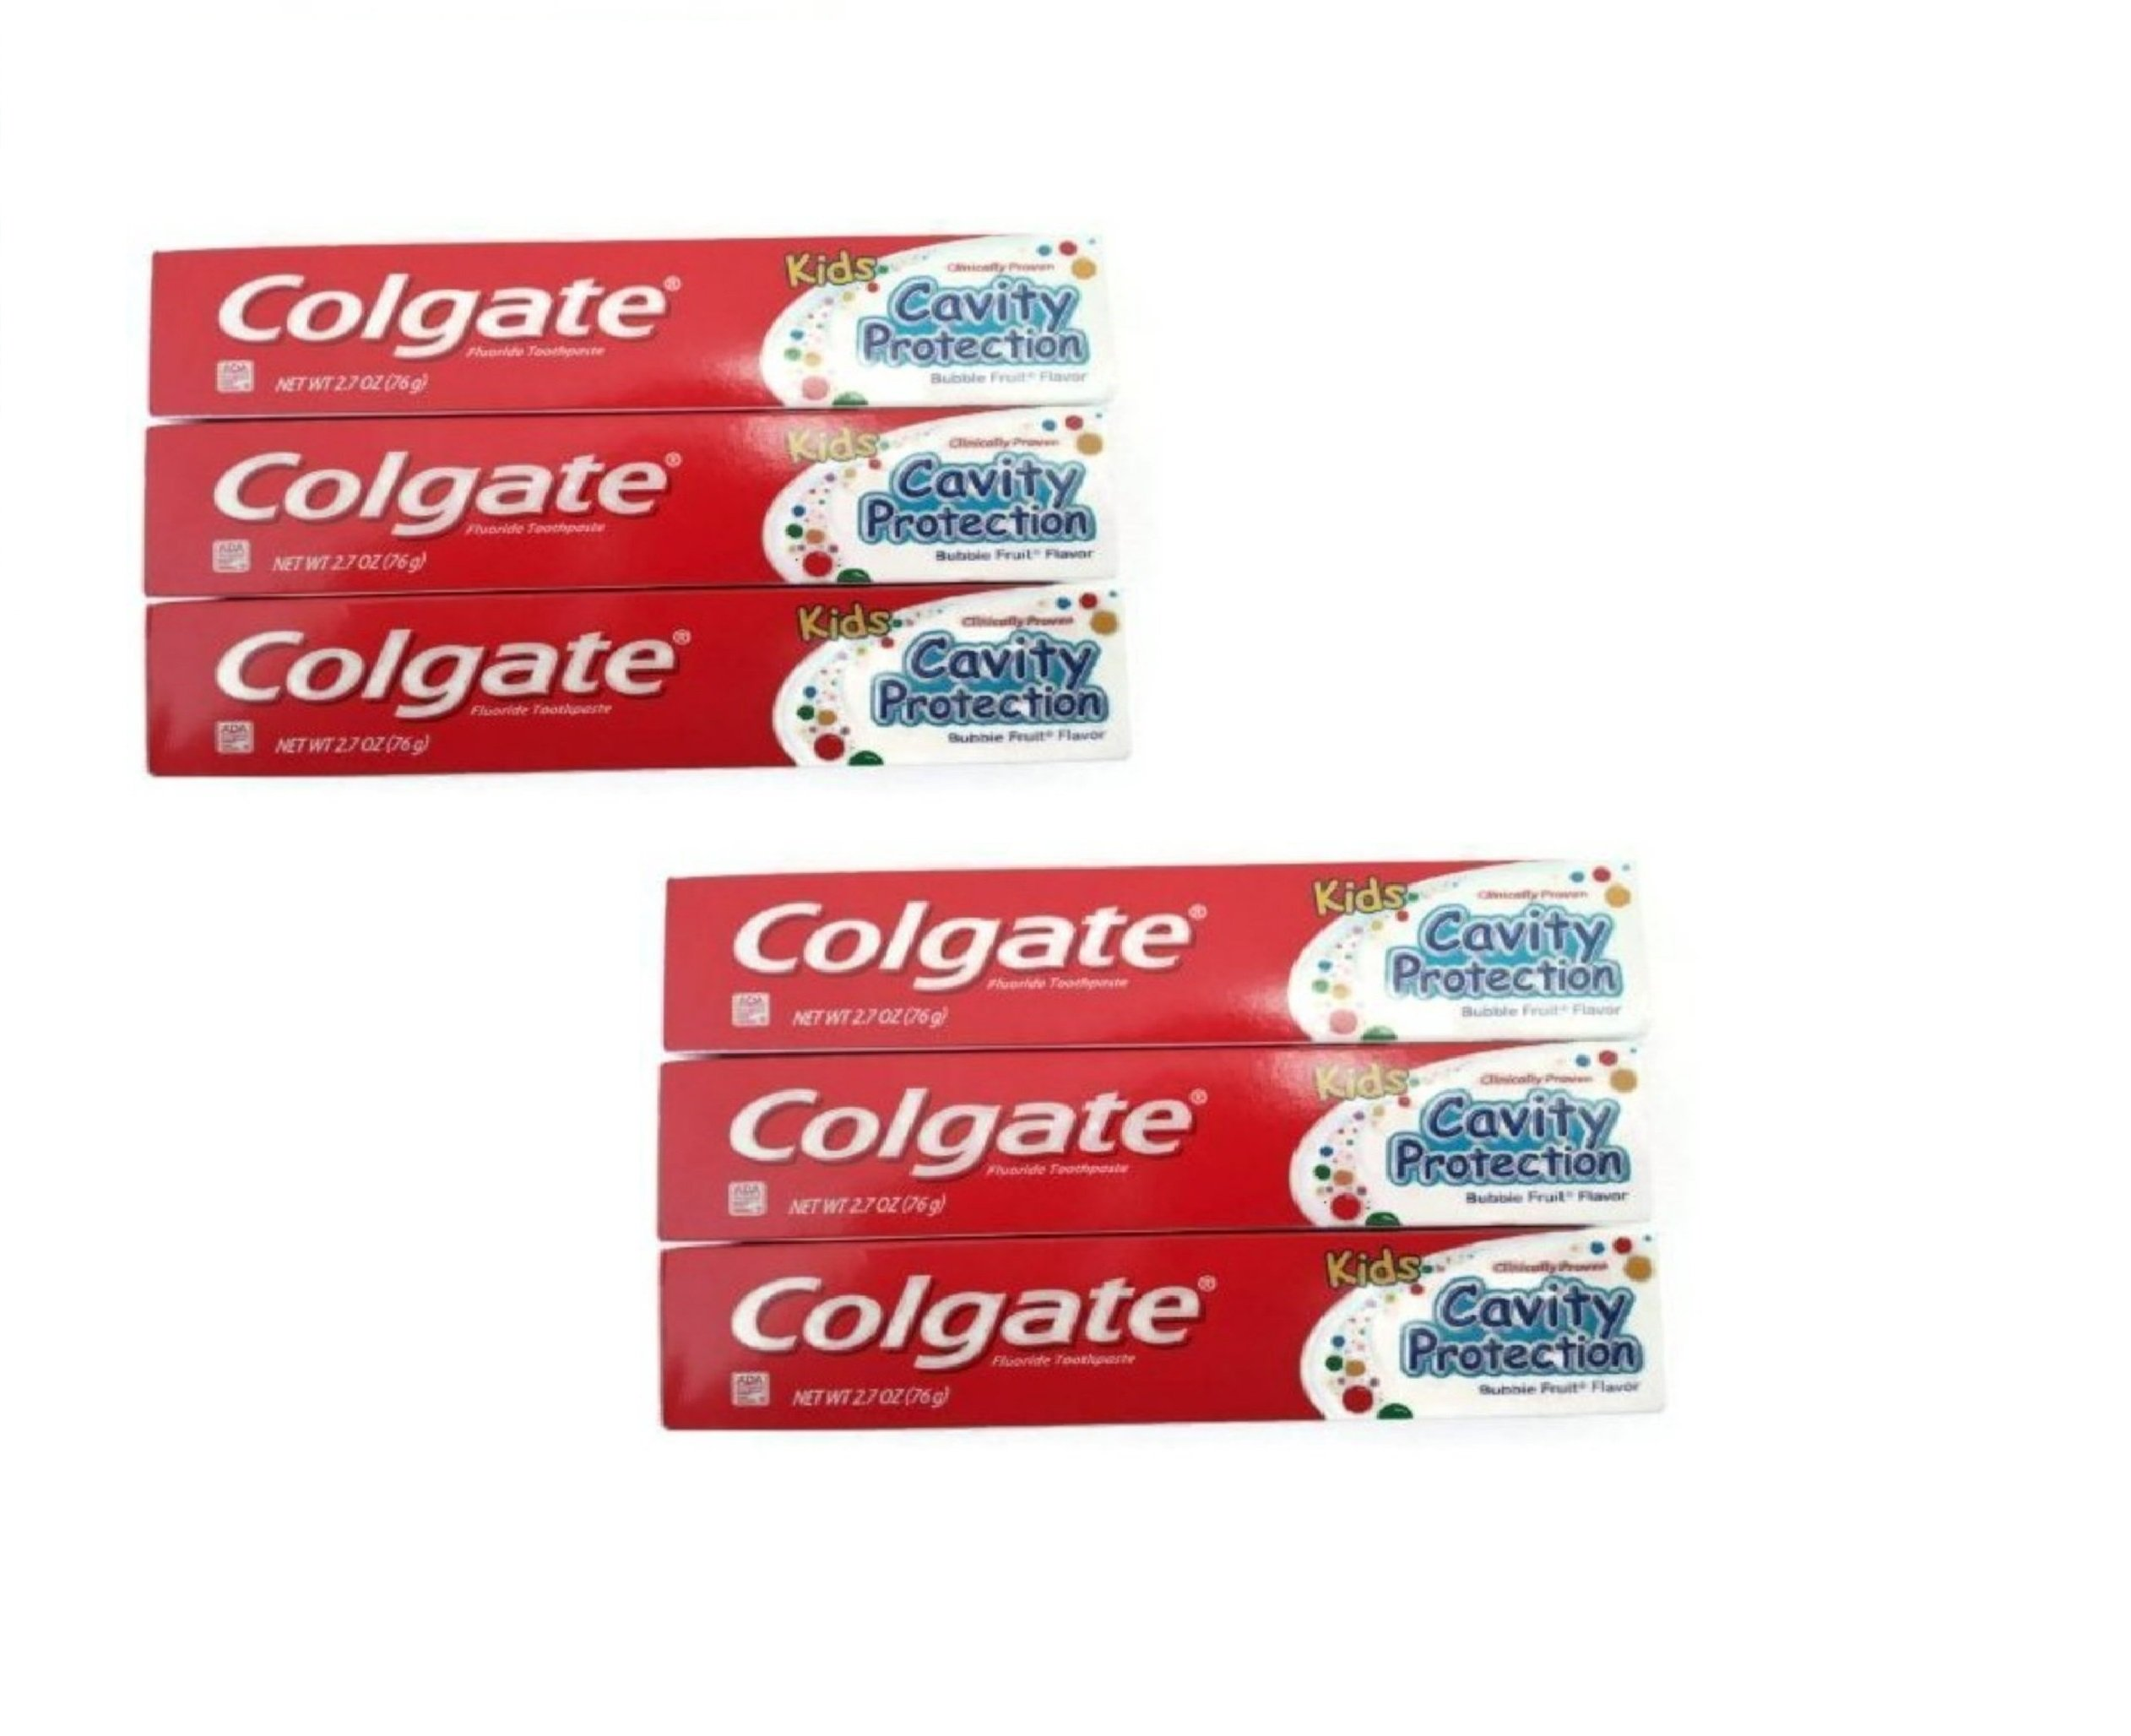 Colgate Kids Cavity Protection Fluoride Toothpaste, Bubble Fruit 2.70 oz ( Pack of 6)